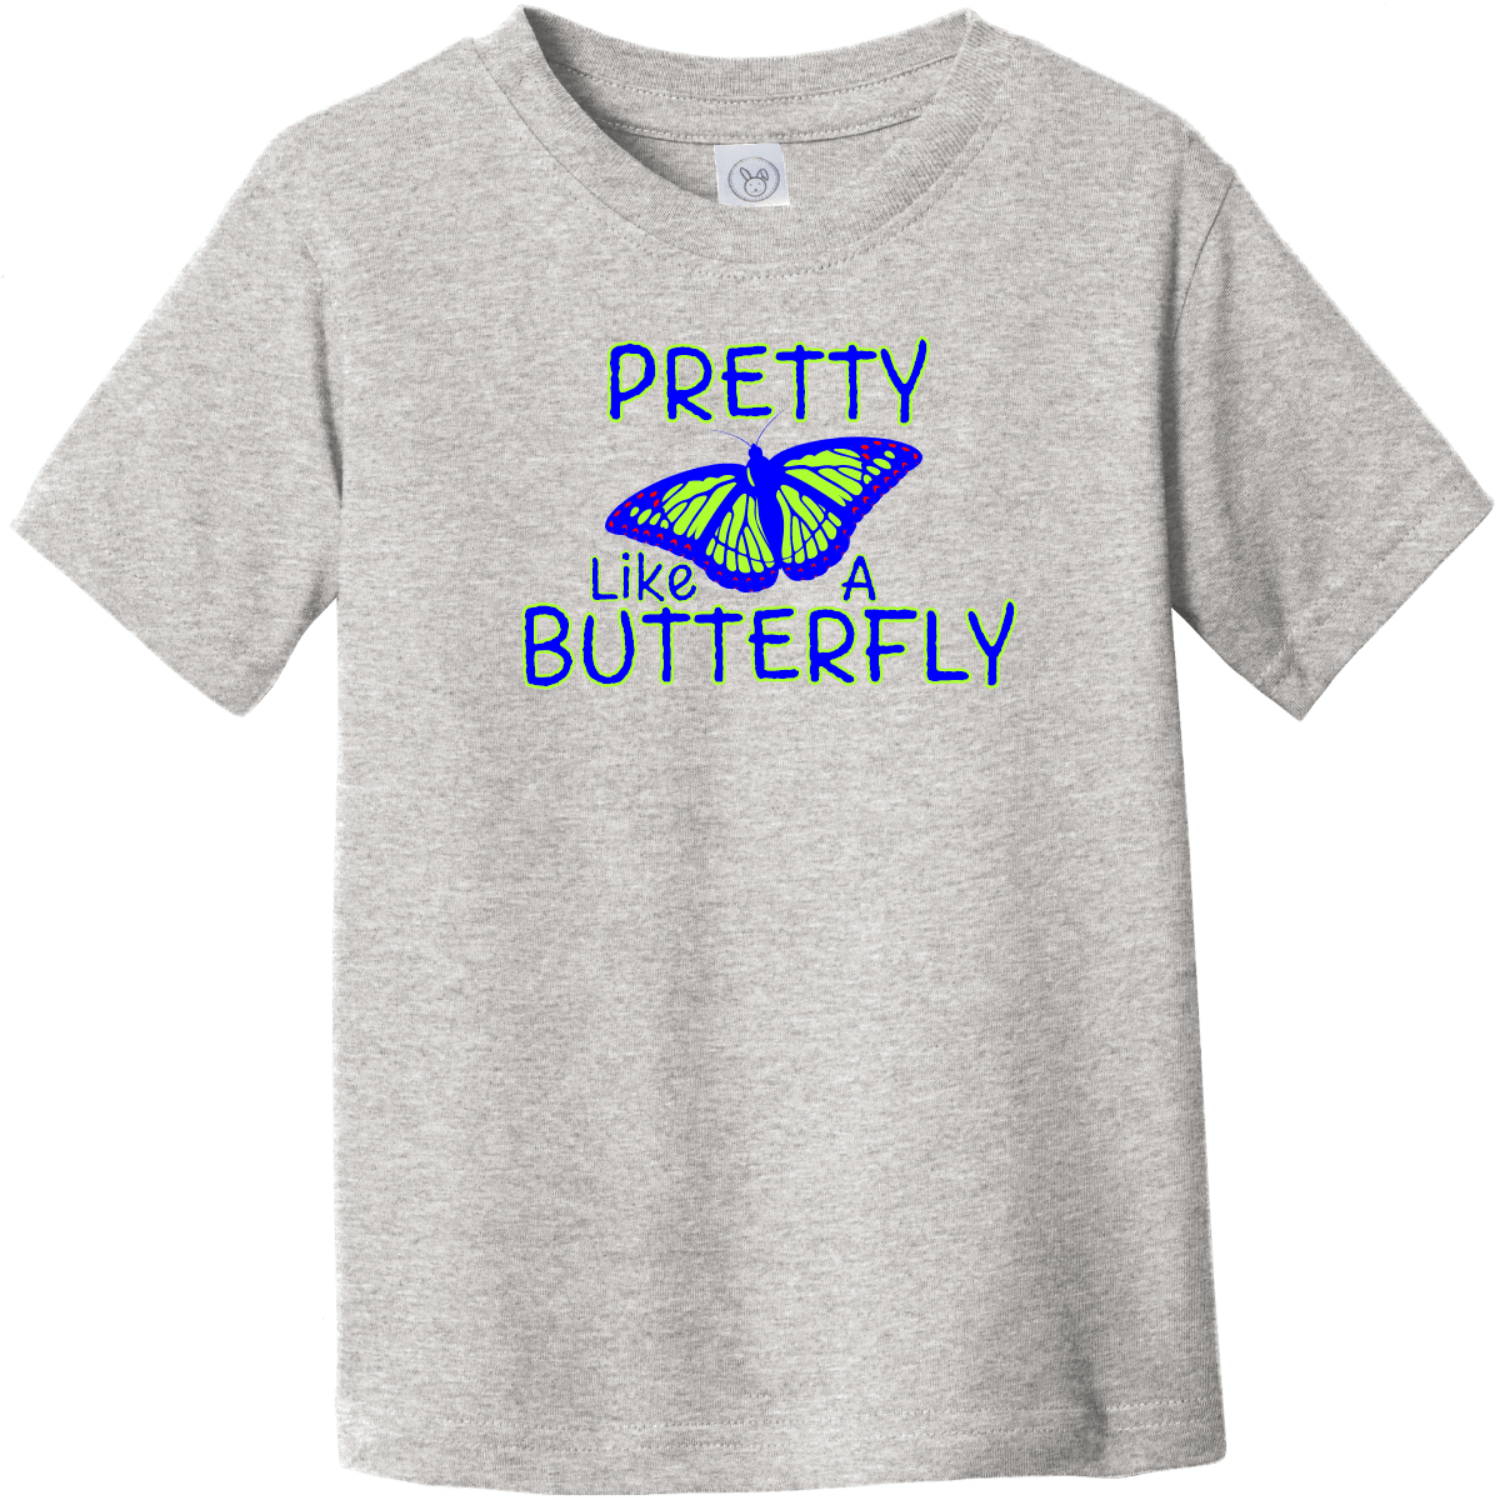 Pretty Like A Butterfly Toddler T-Shirt Heather Rabbit Skins Toddler Fine Jersey Tee RS3321